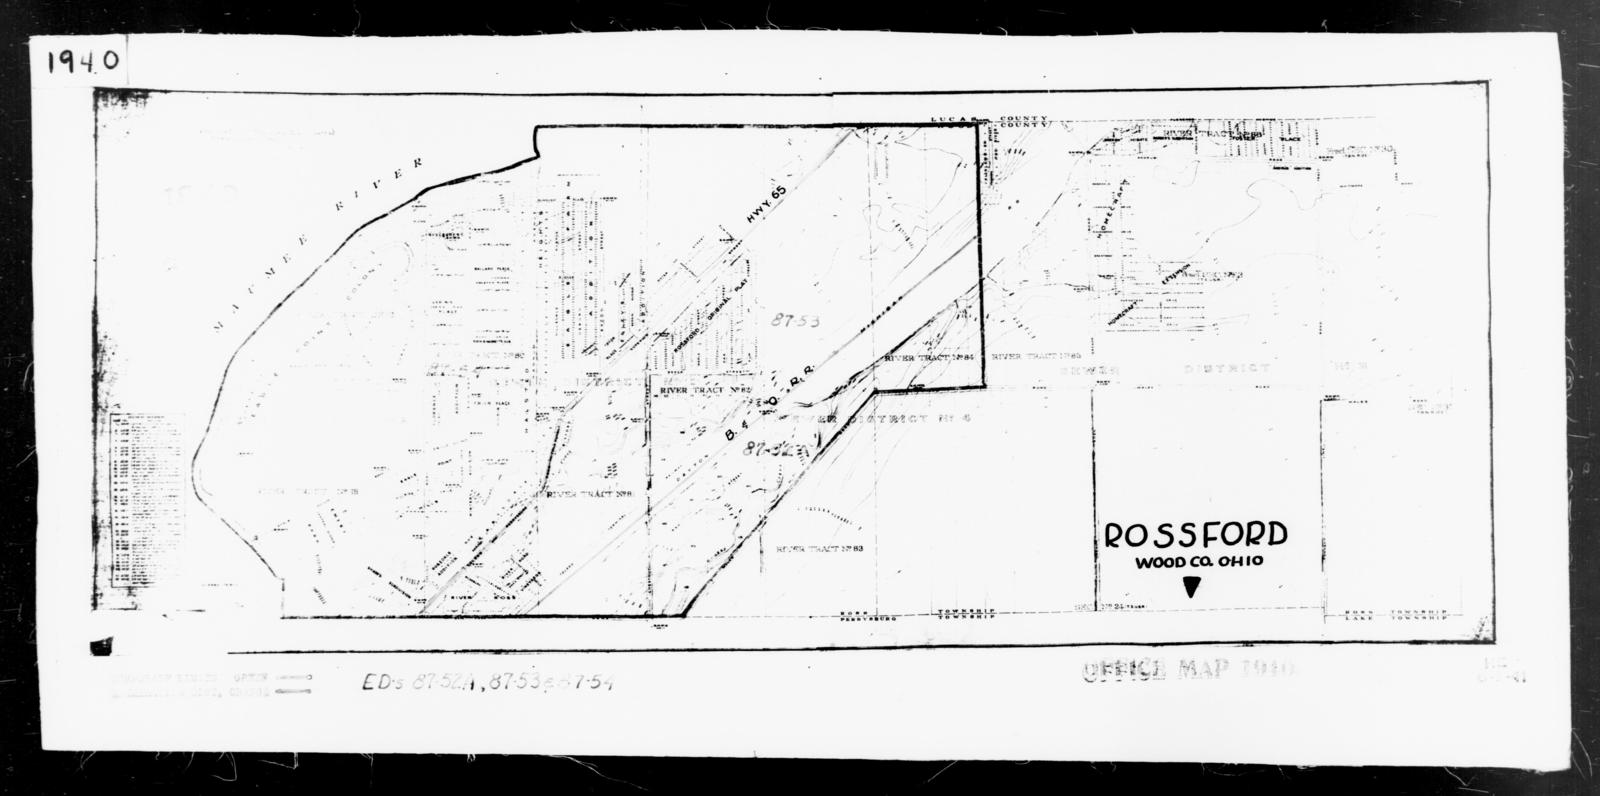 Rossford Ohio Map.1940 Census Enumeration District Maps Ohio Wood County